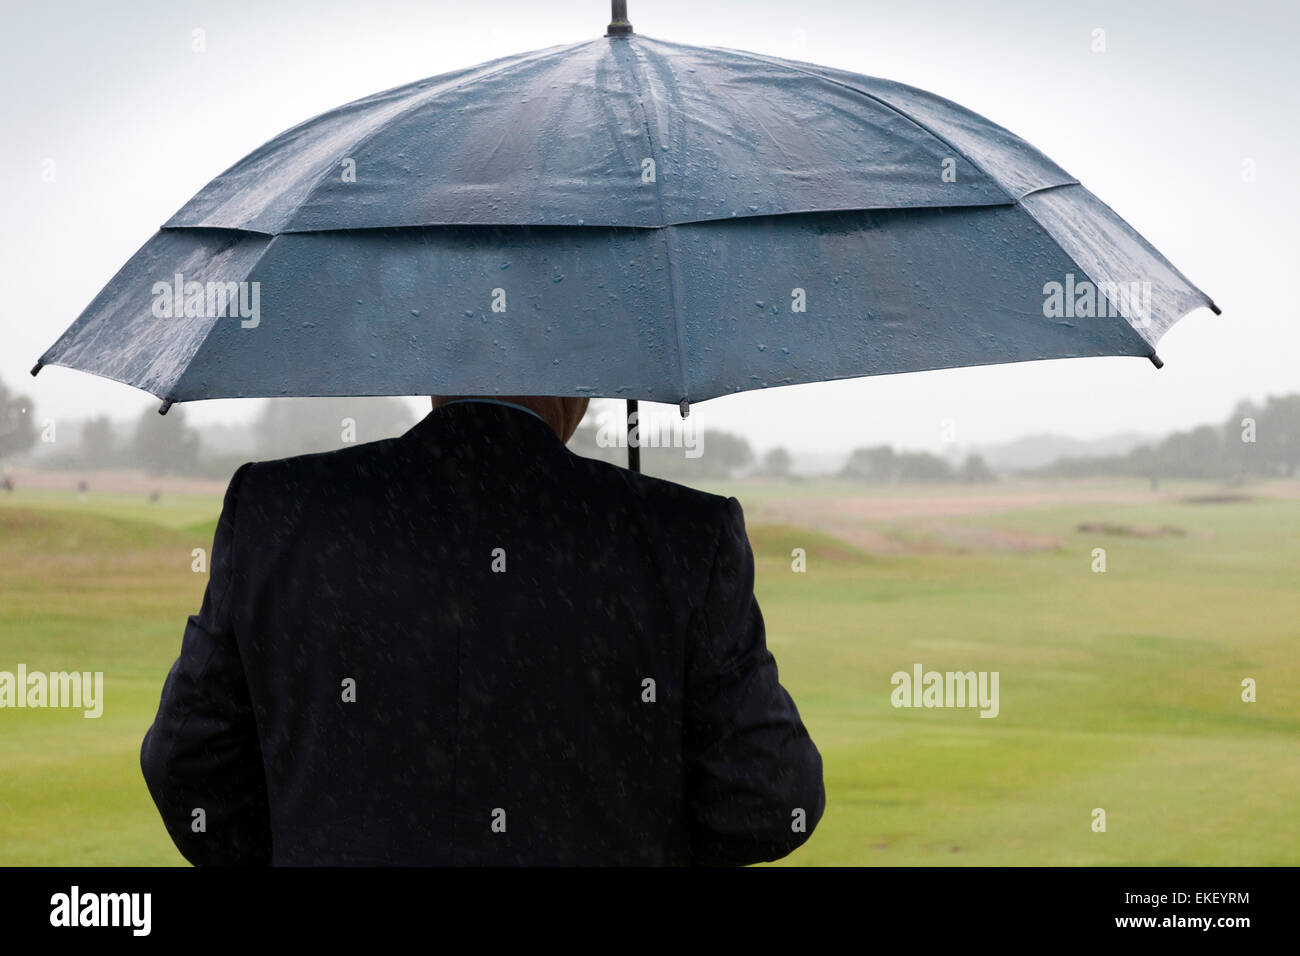 Golfer sheltering under an umbrella, looking out onto a golf course while it's raining - Stock Image